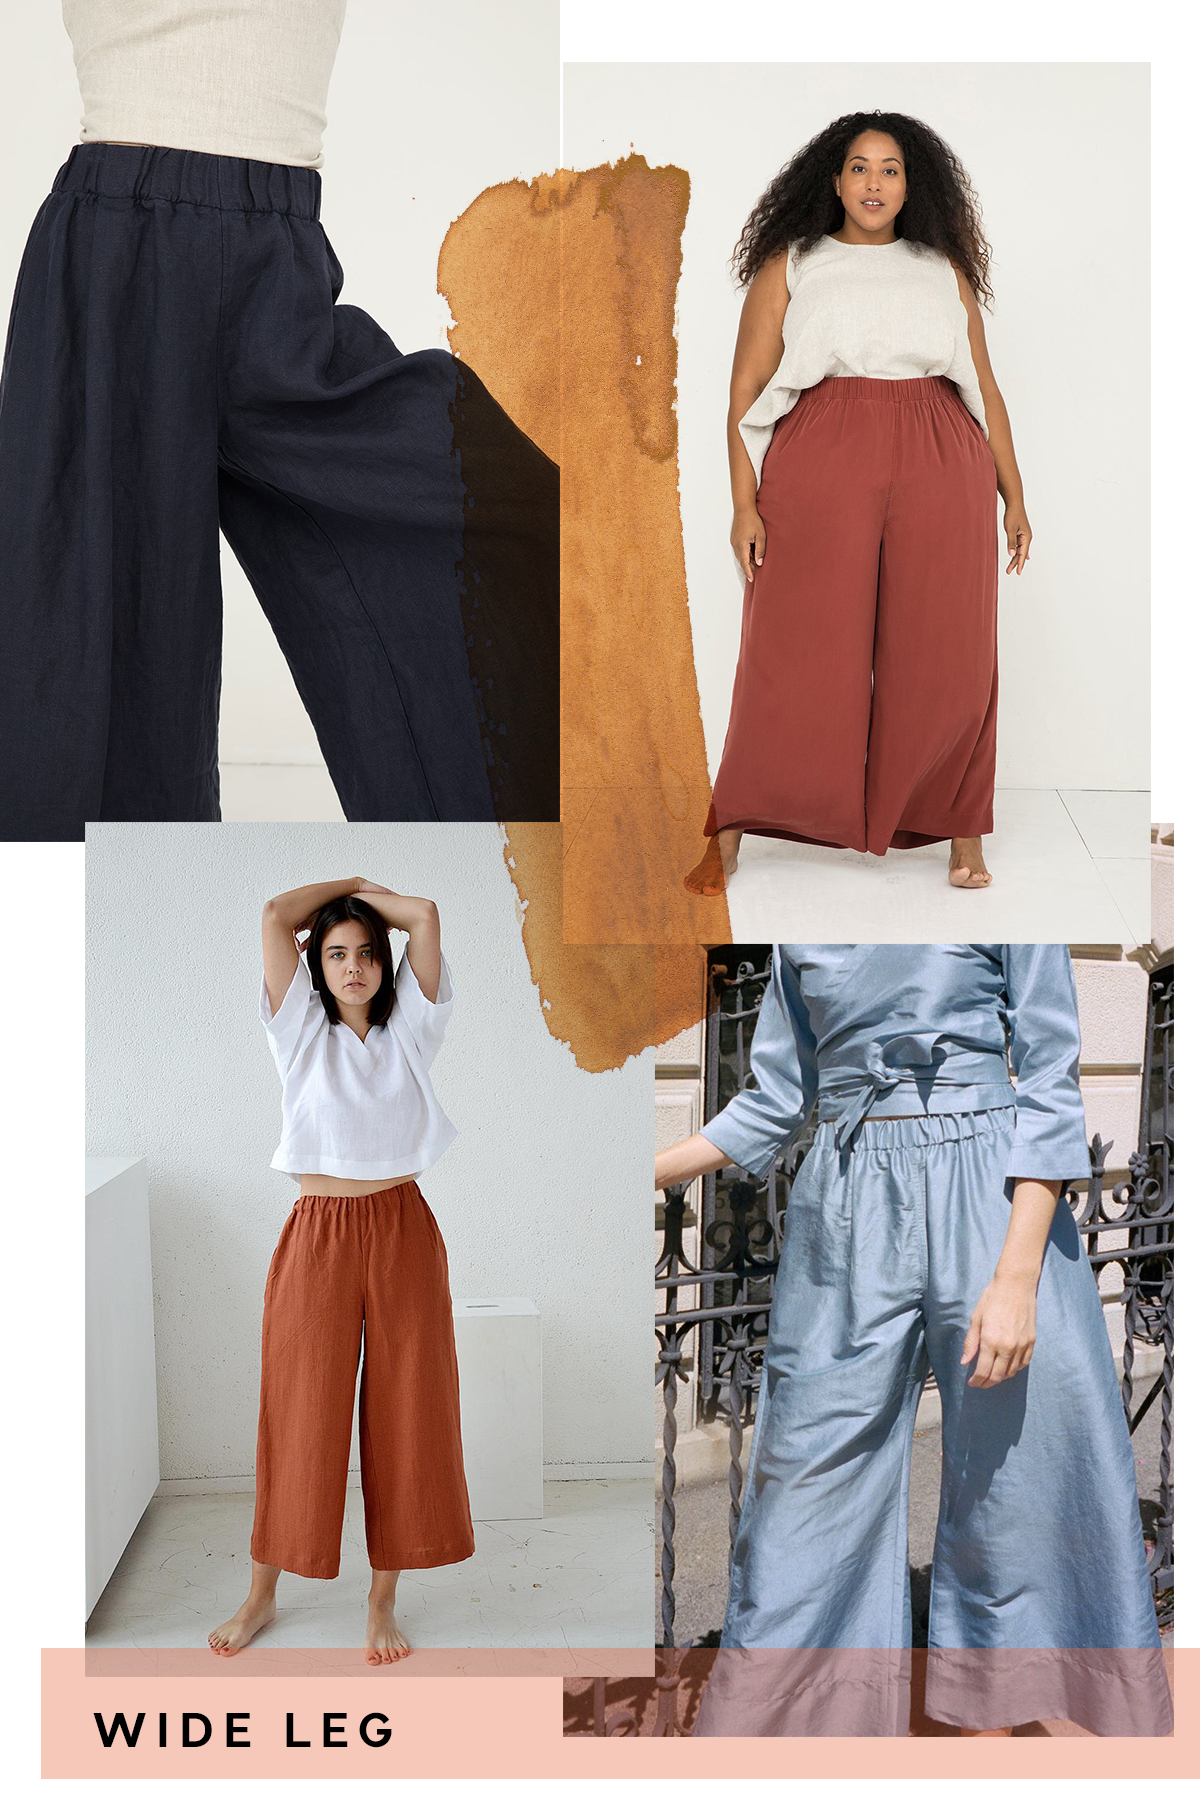 Wide leg looks for the Opal pant